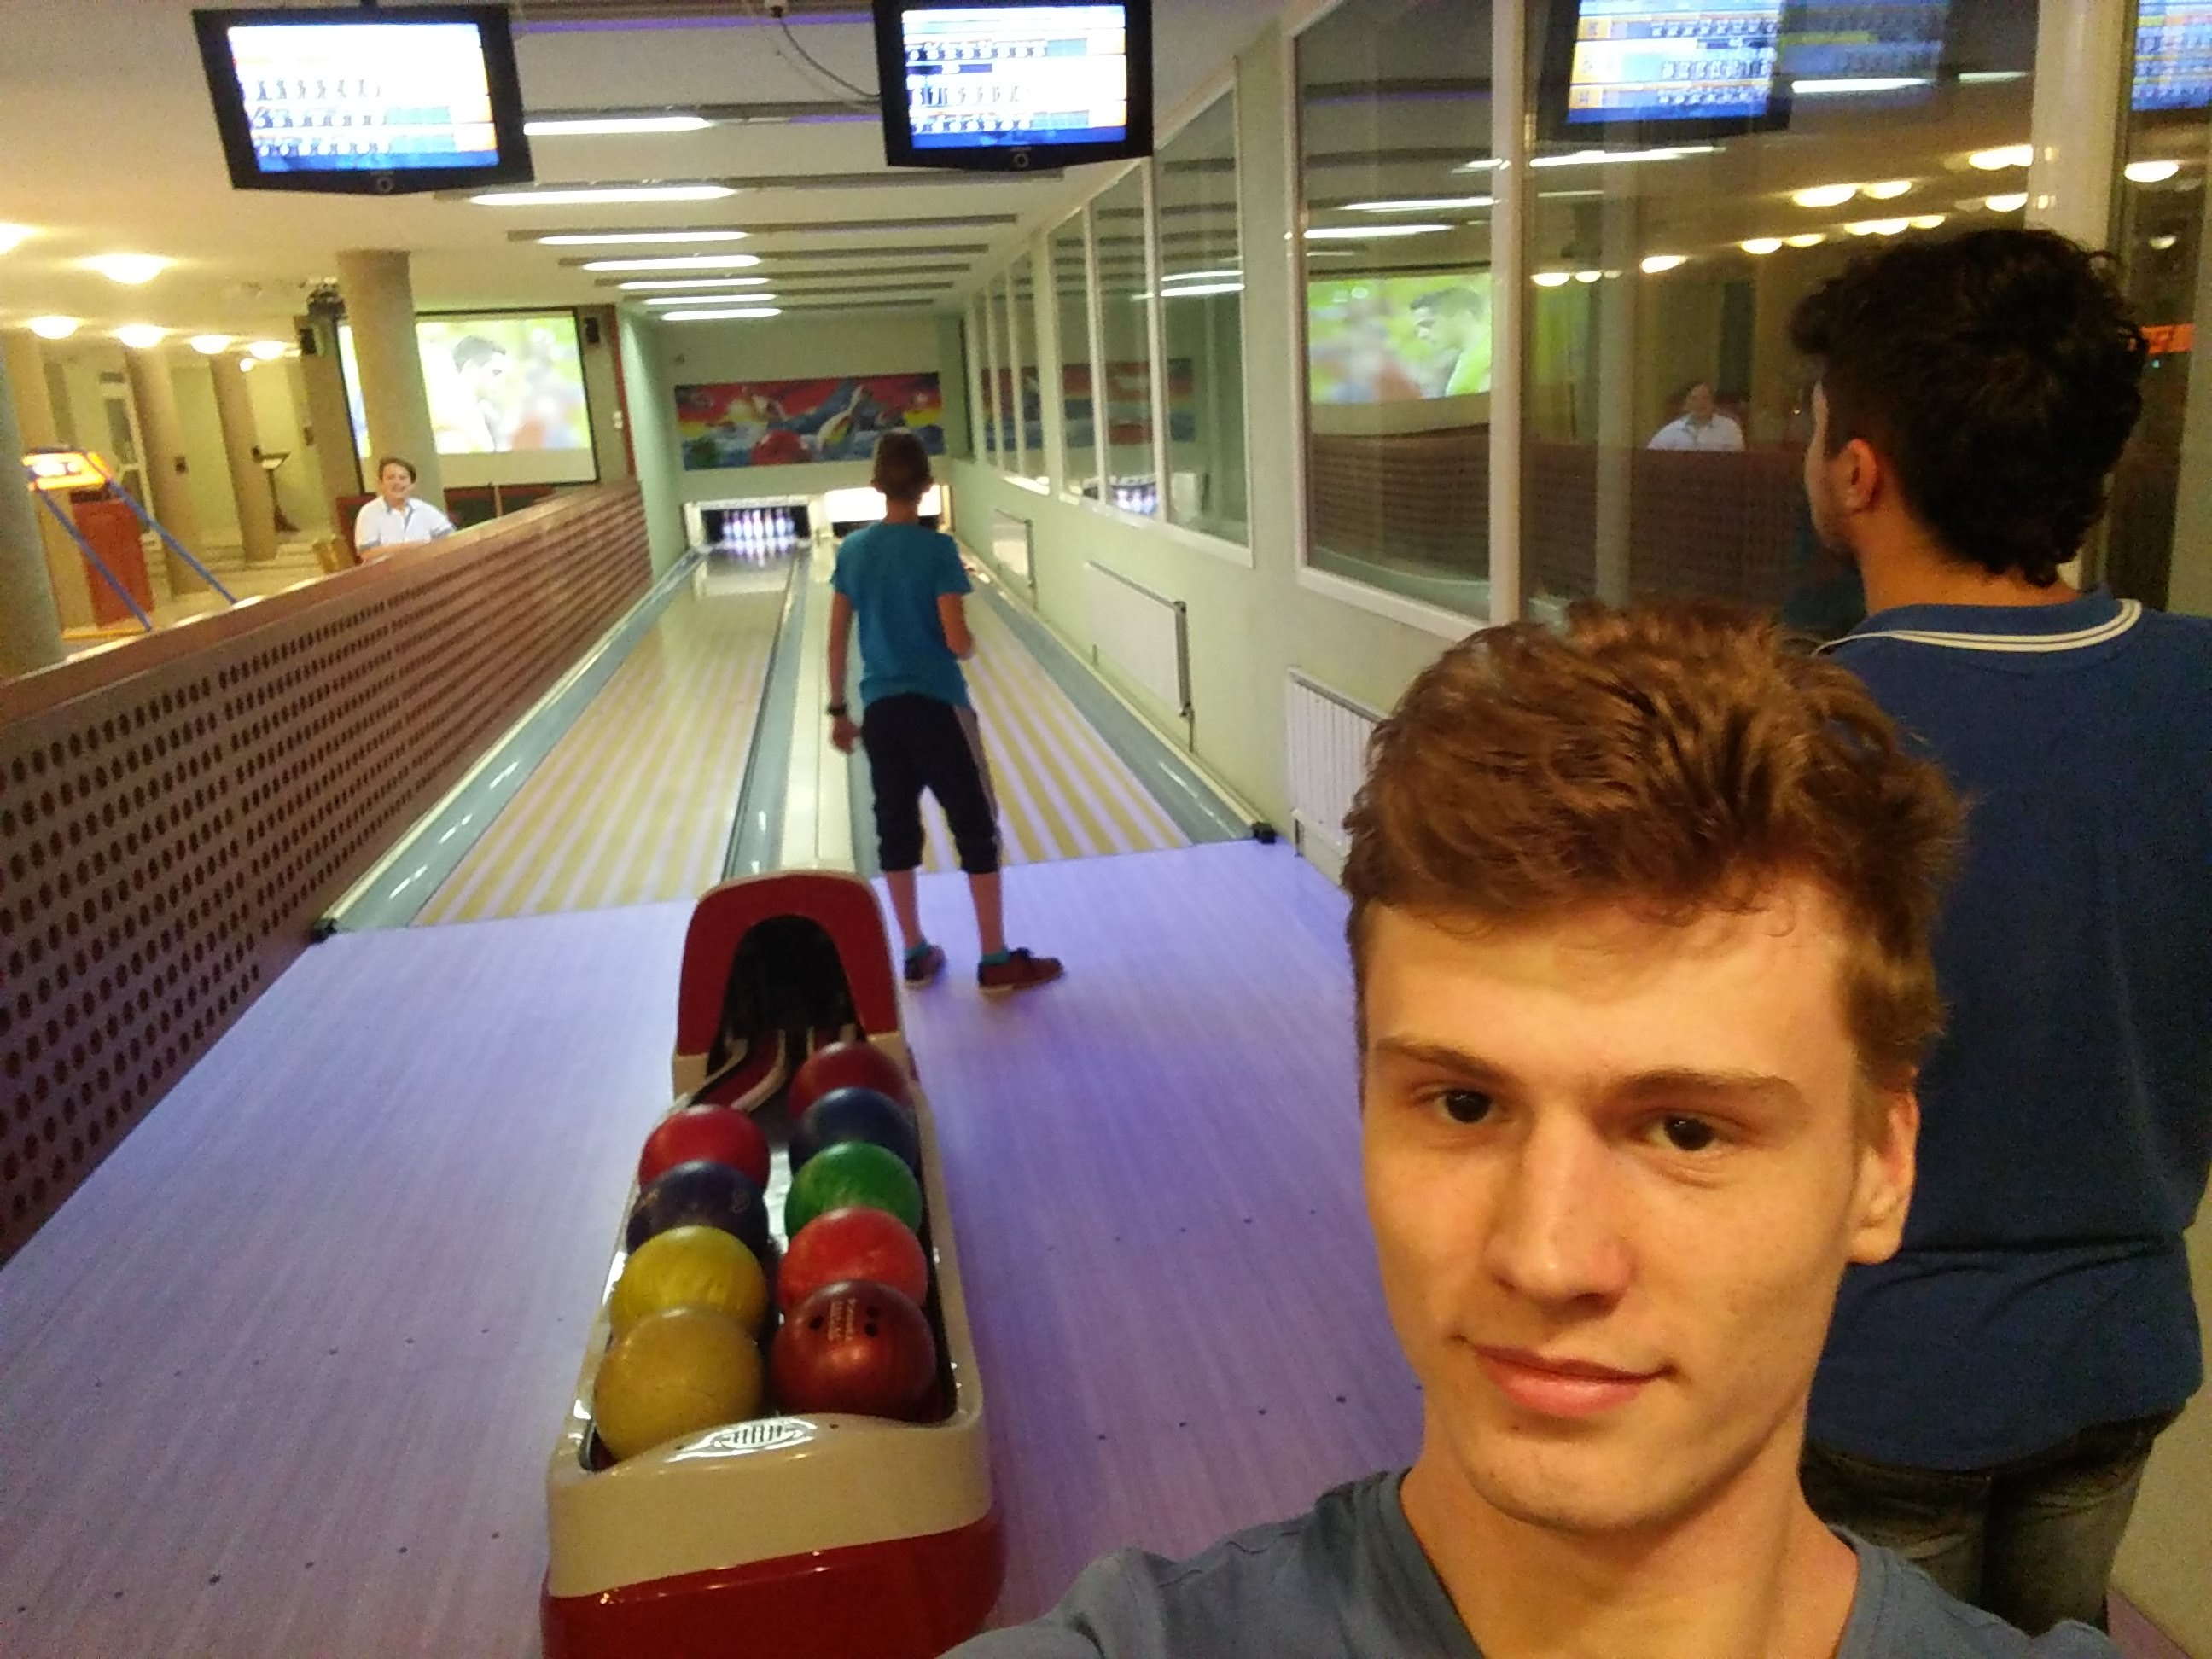 Playing bowling in breaks